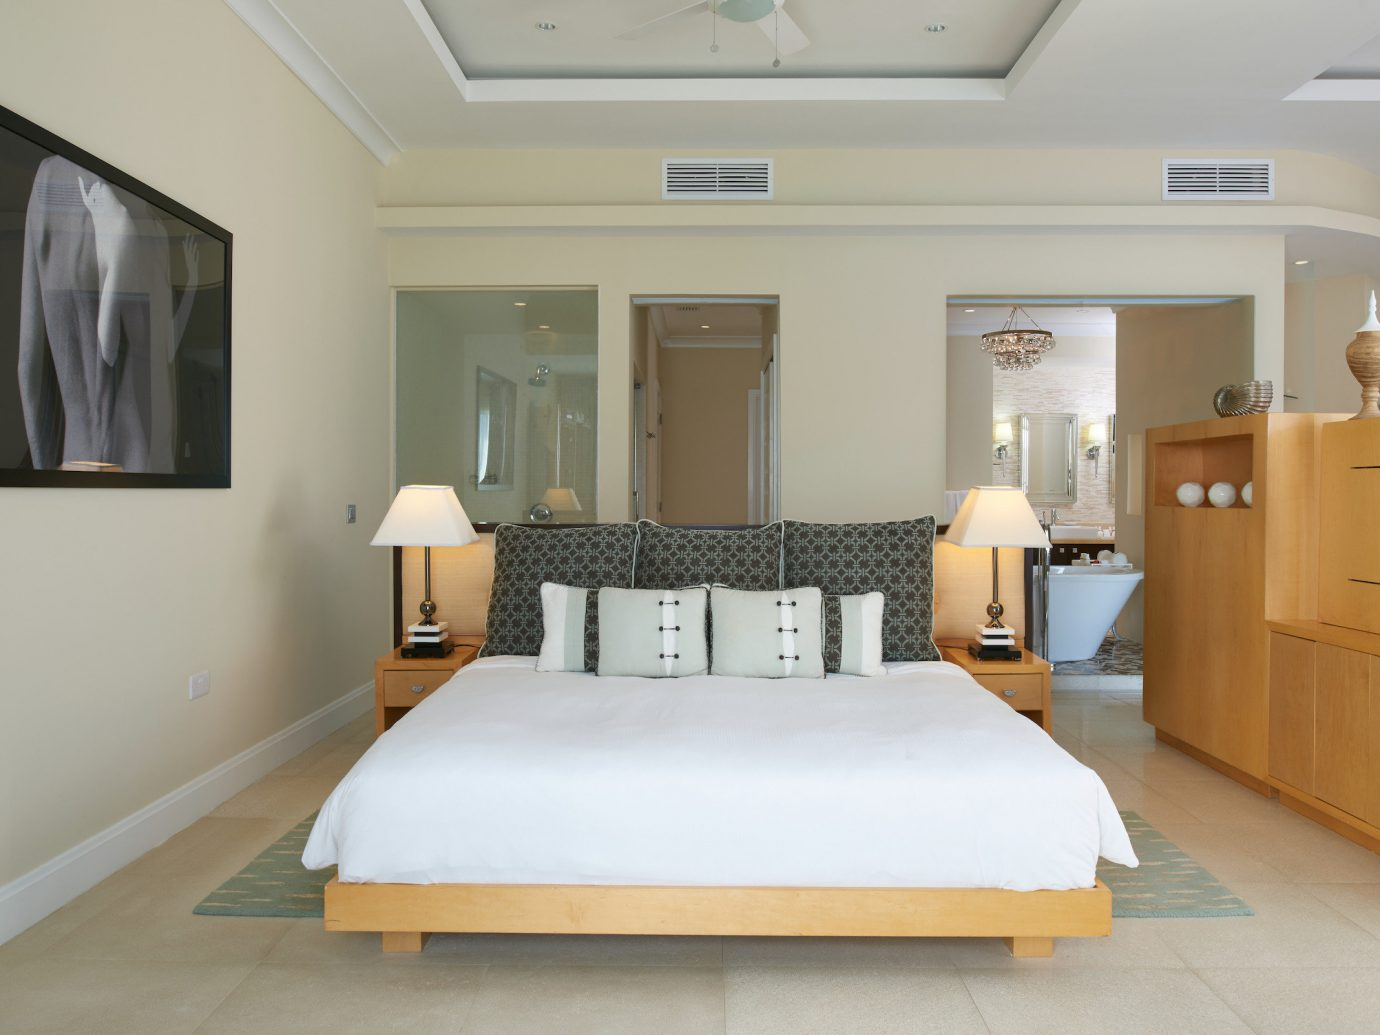 Bedroom at BodyHoliday, St. Lucia